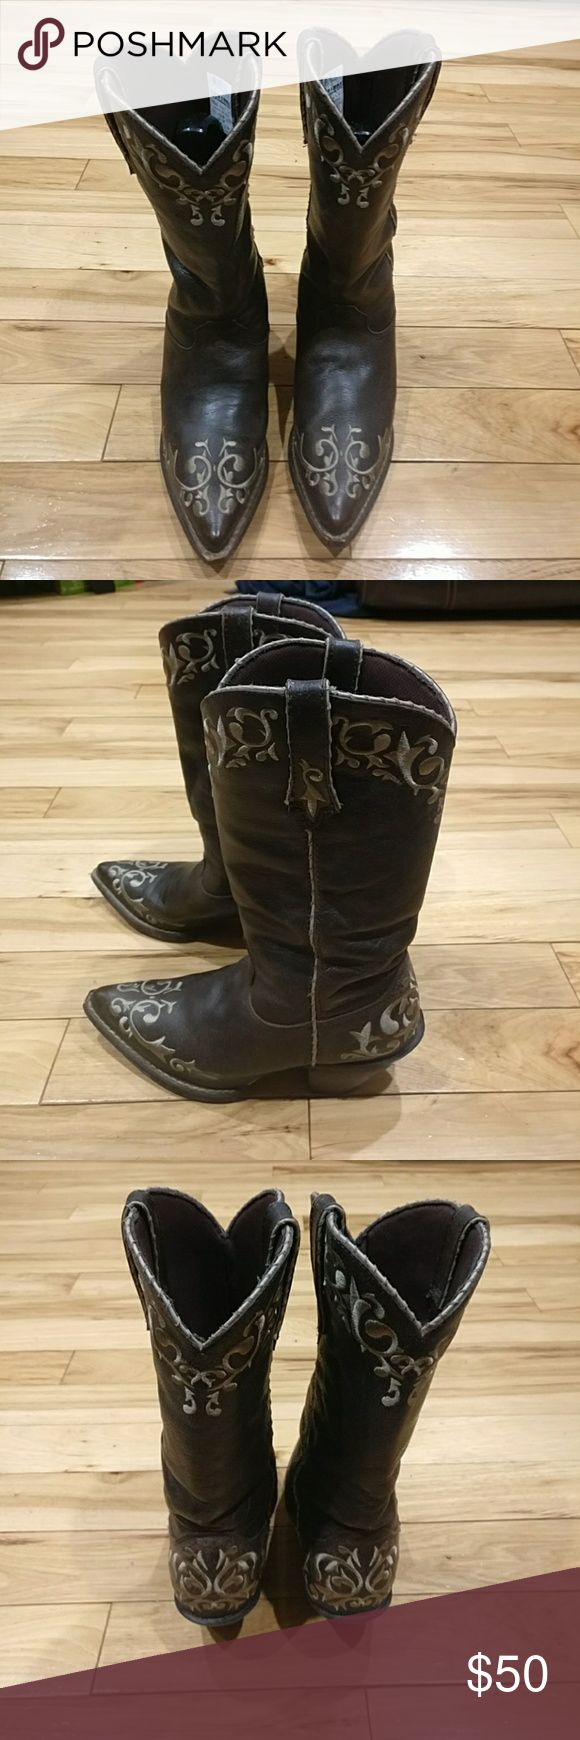 Durango Crush women's cowboy boots size 7M Crush Durango women's cowboy boots size 7 medium brown and gold color. The leather is in excellent condition and so are The soles of the boots. They look really nice and sexy, I'm selling them at an excellent price, so get them today! Durango Shoes